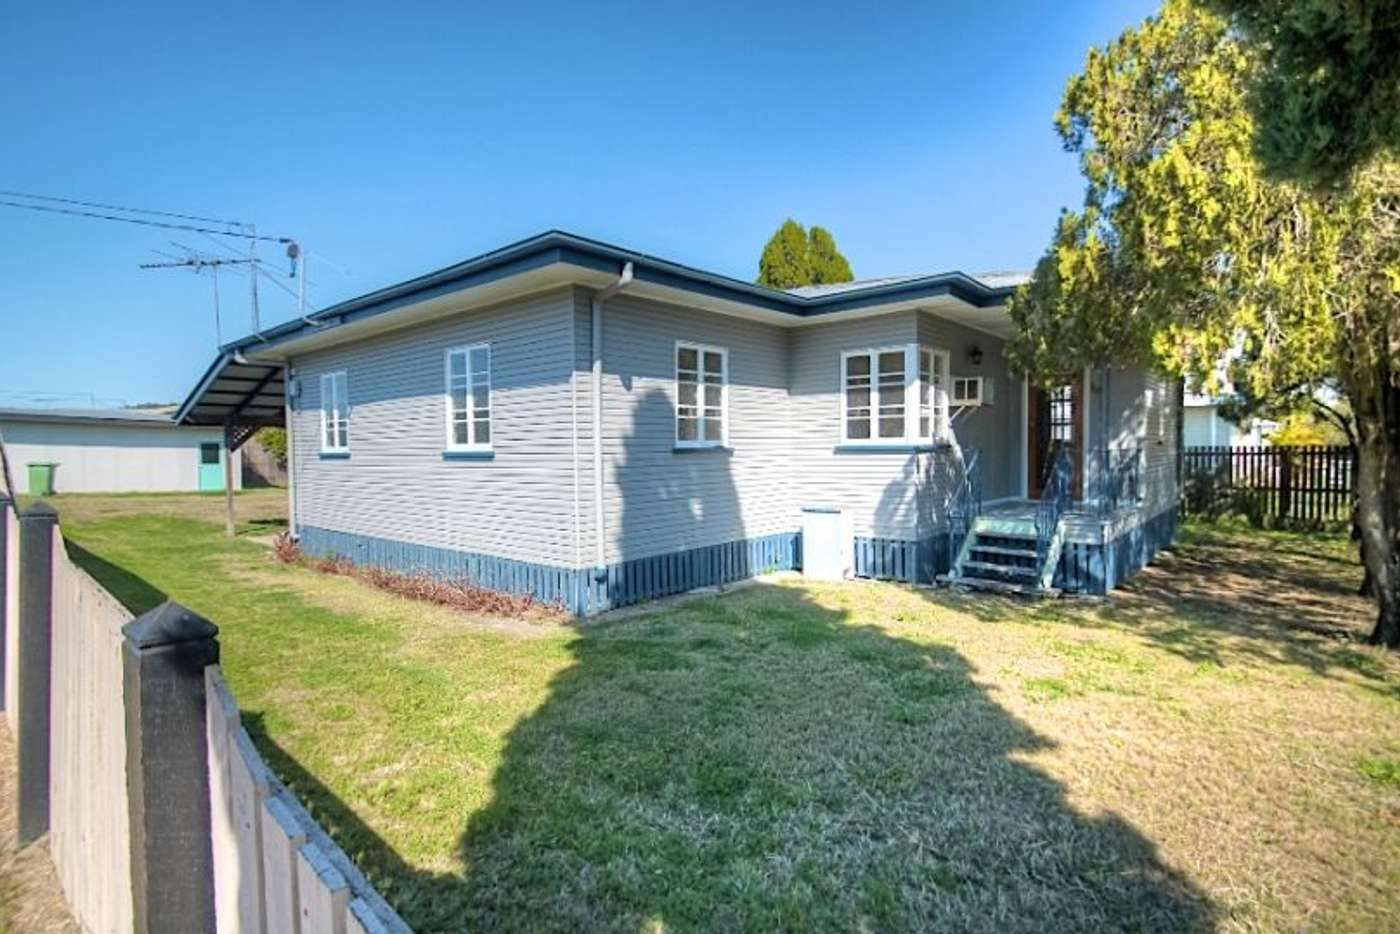 Main view of Homely house listing, 184 South Station Road, Silkstone QLD 4304